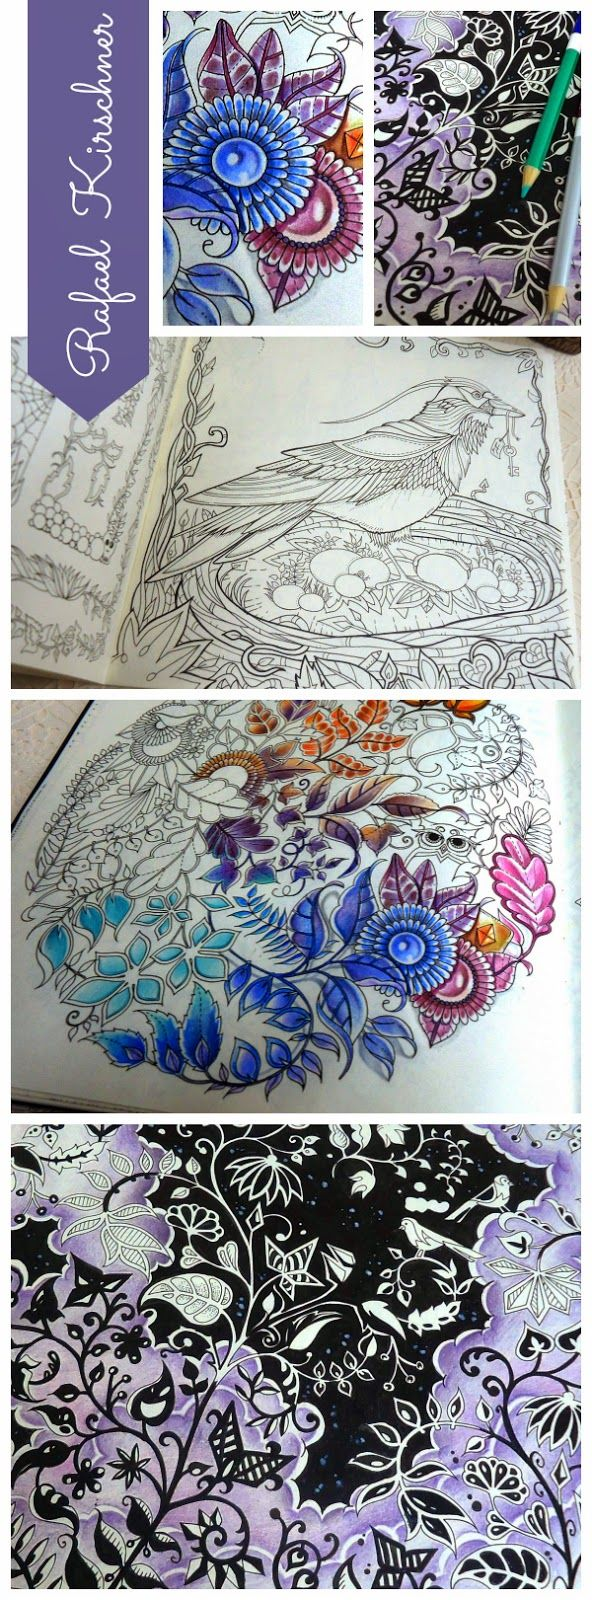 Th the secret garden coloring book uae - Atelier Gina Pafiadache Tips For Coloring Books Secret Garden And Enchanted Forest